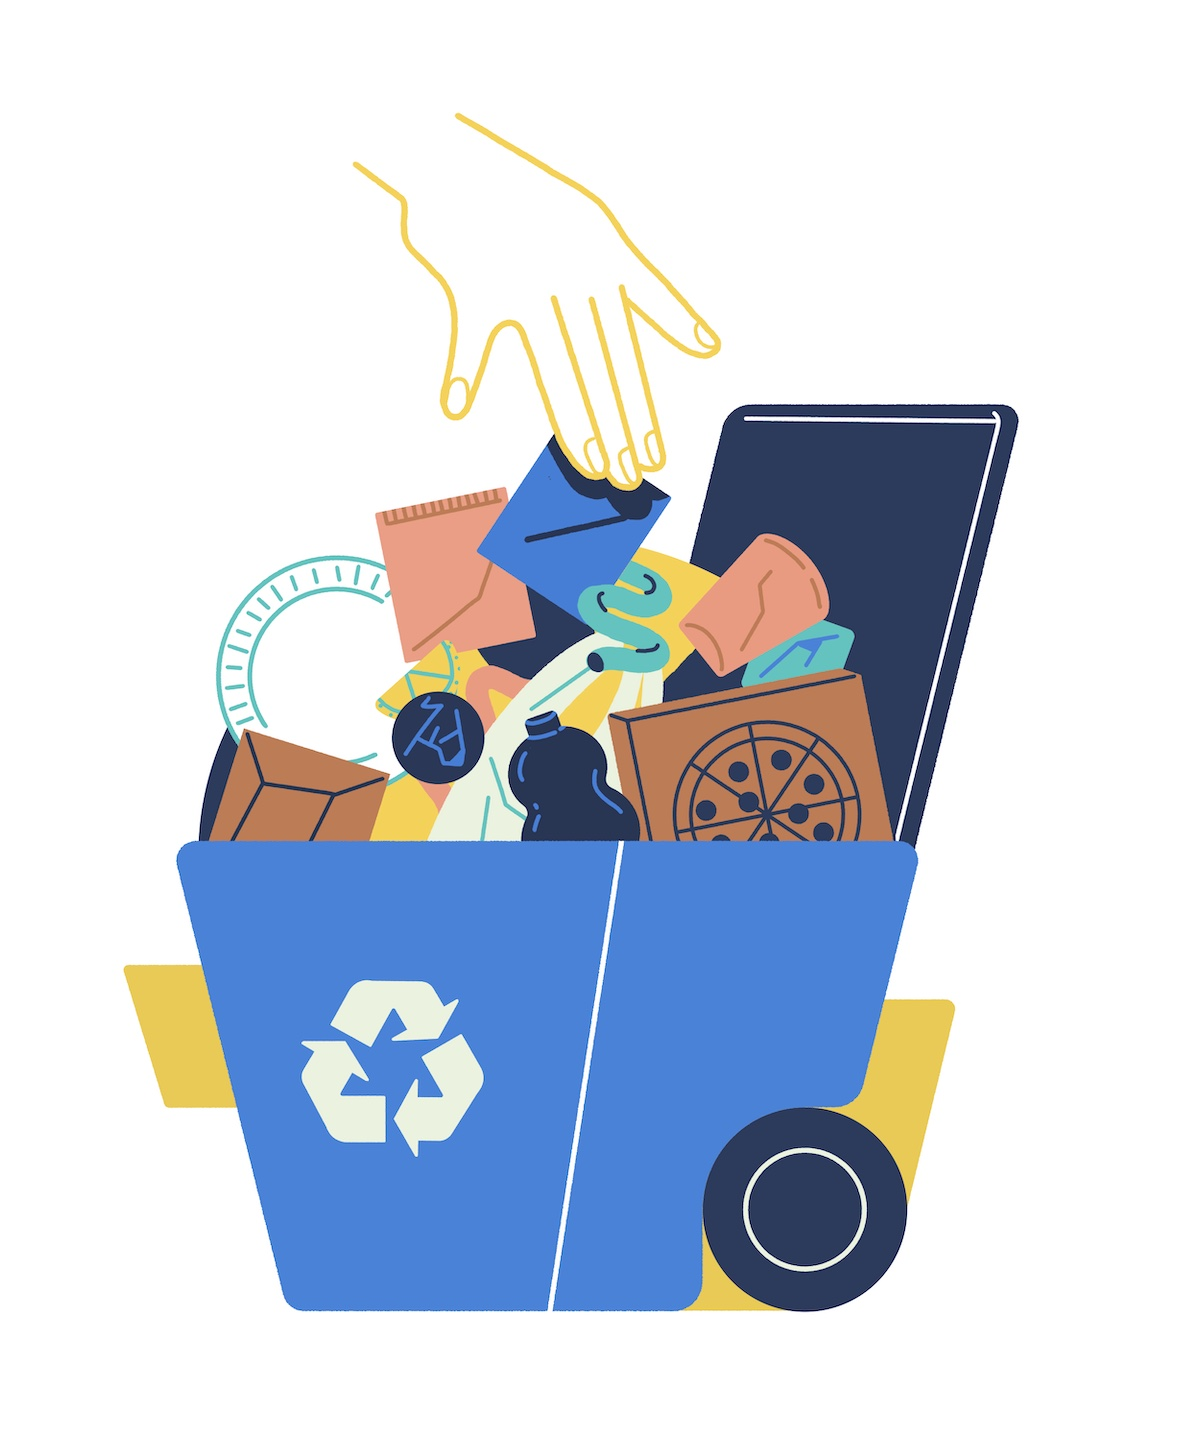 An illustration of all sorts of trash going into a recycling bin.